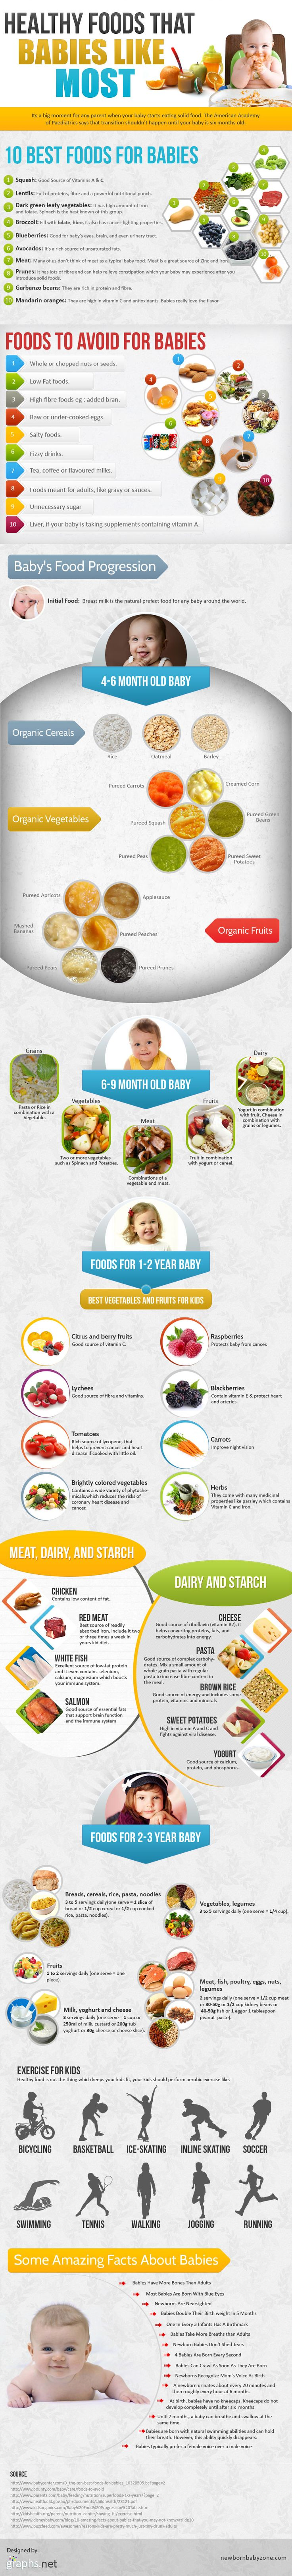 Healthy Foods That Babies Like Most